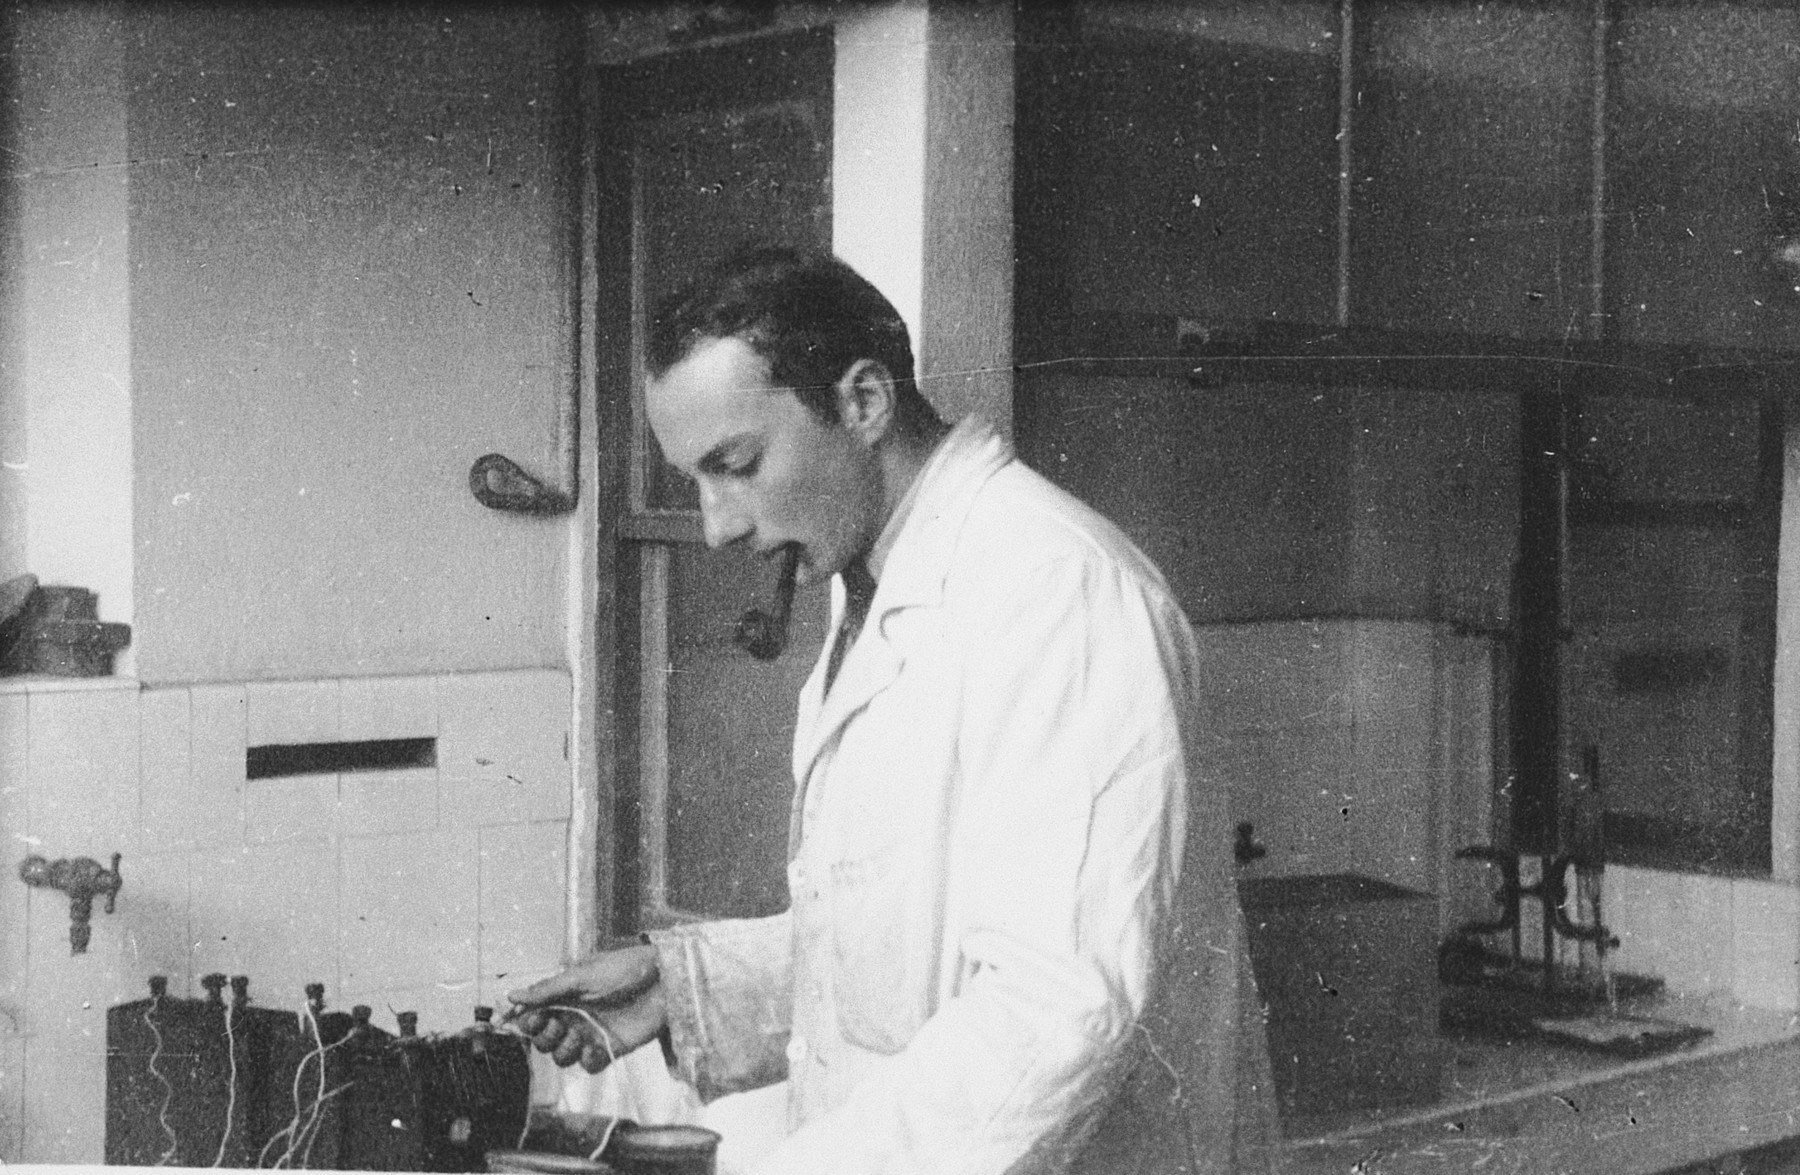 Otto Giniewski, a leader of the French Zionist underground, works in his chemistry laboratory at the University of Grenoble.